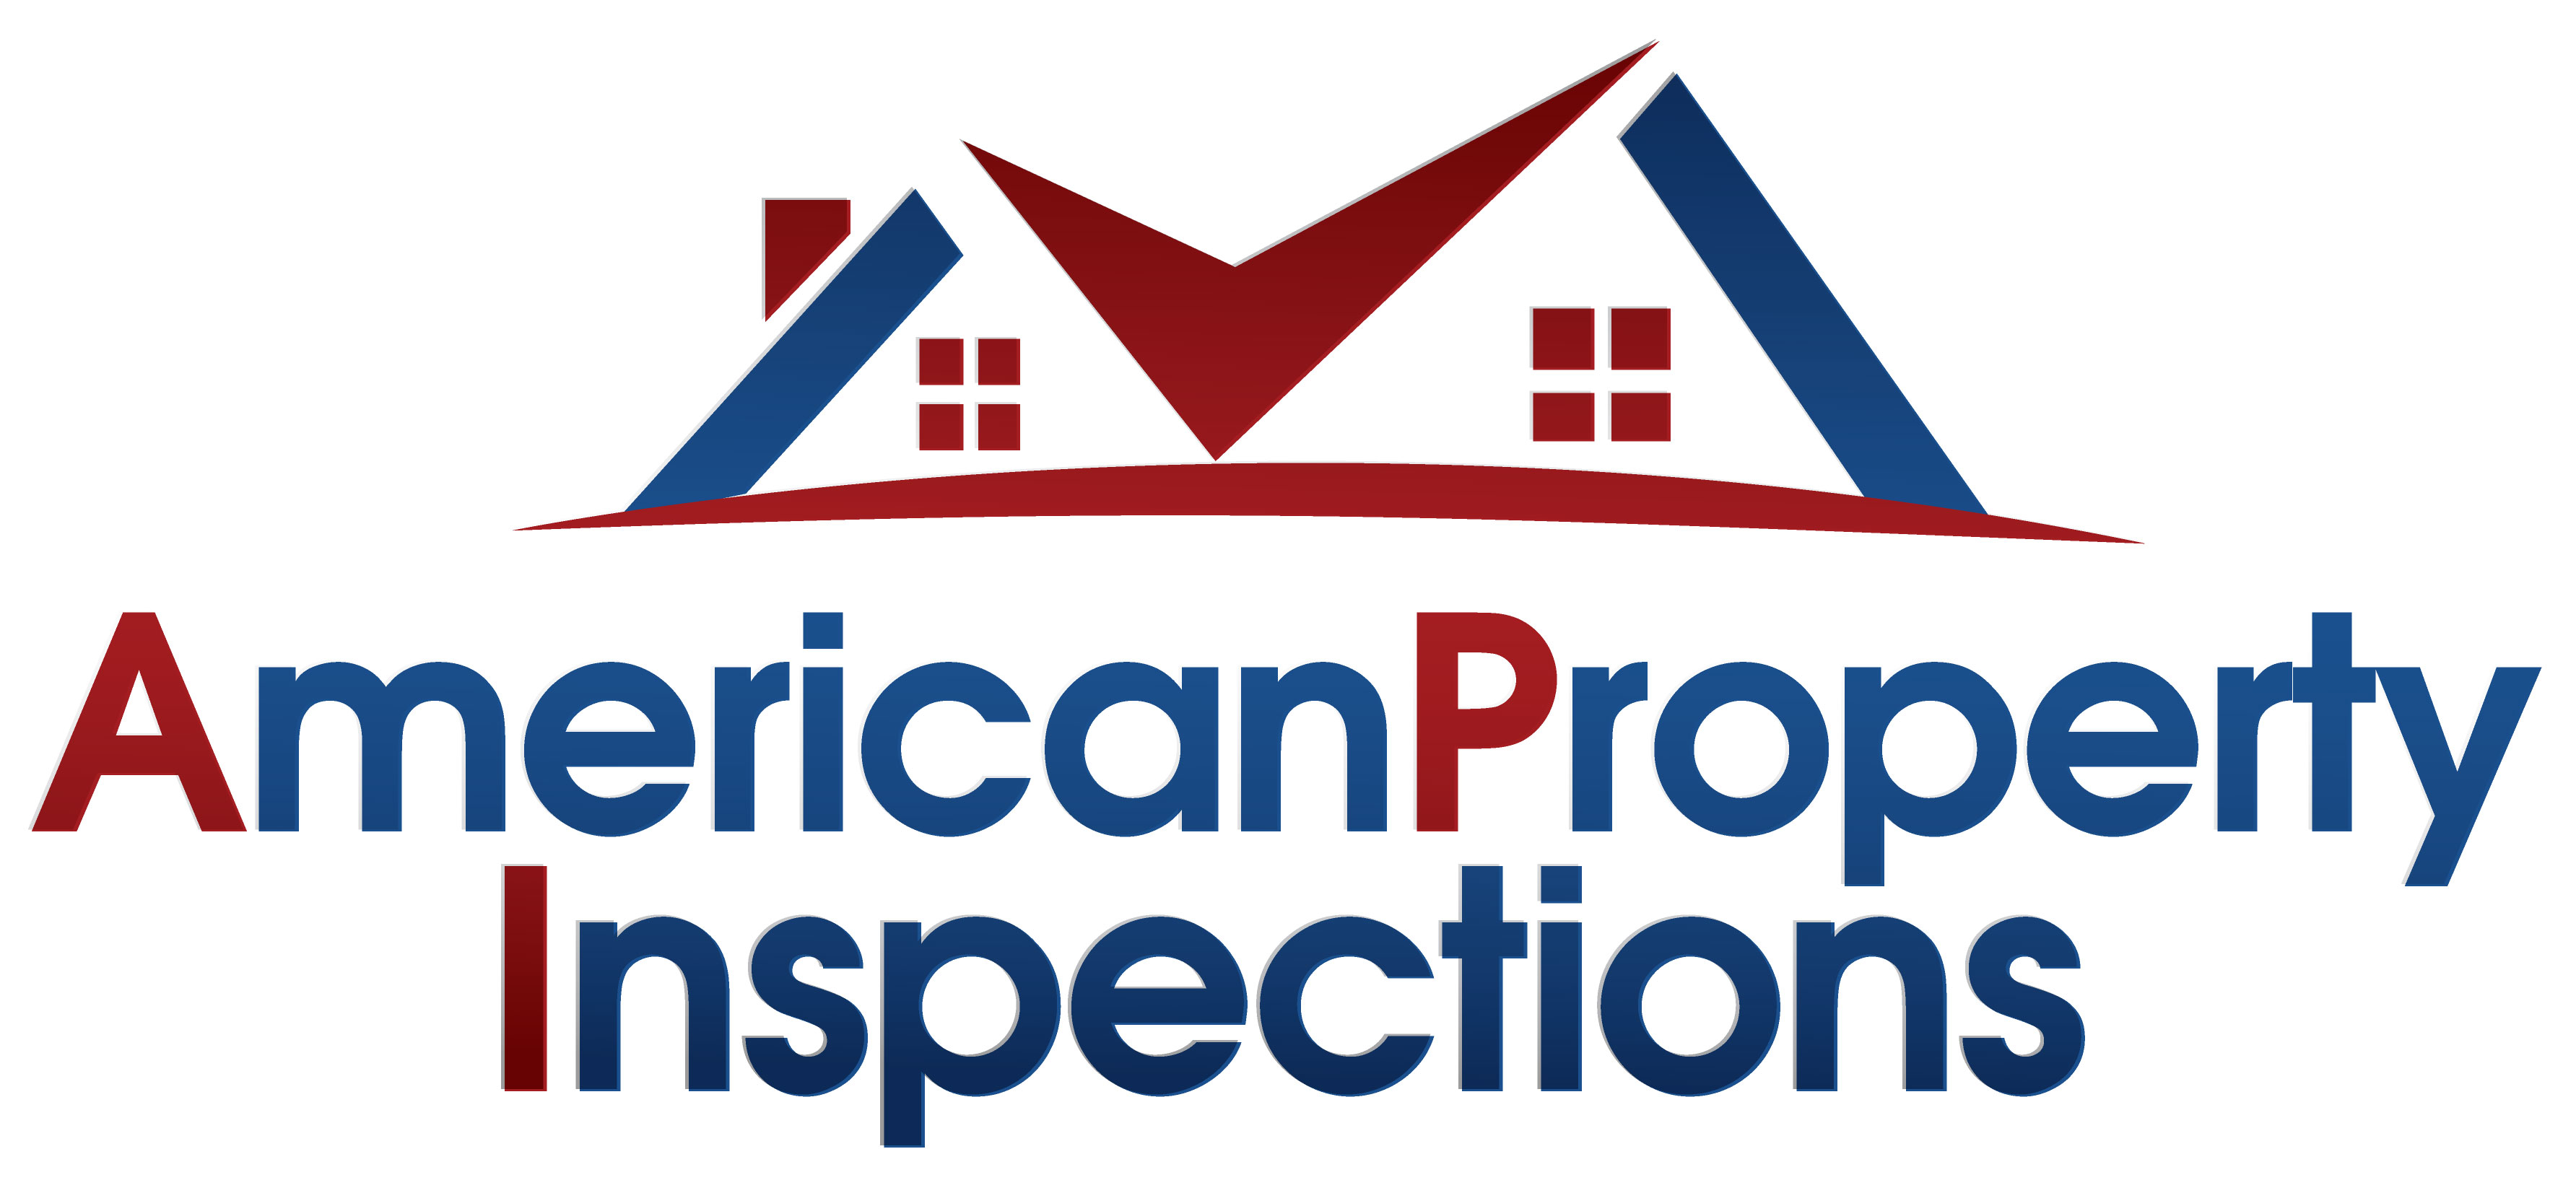 American Property Inspections